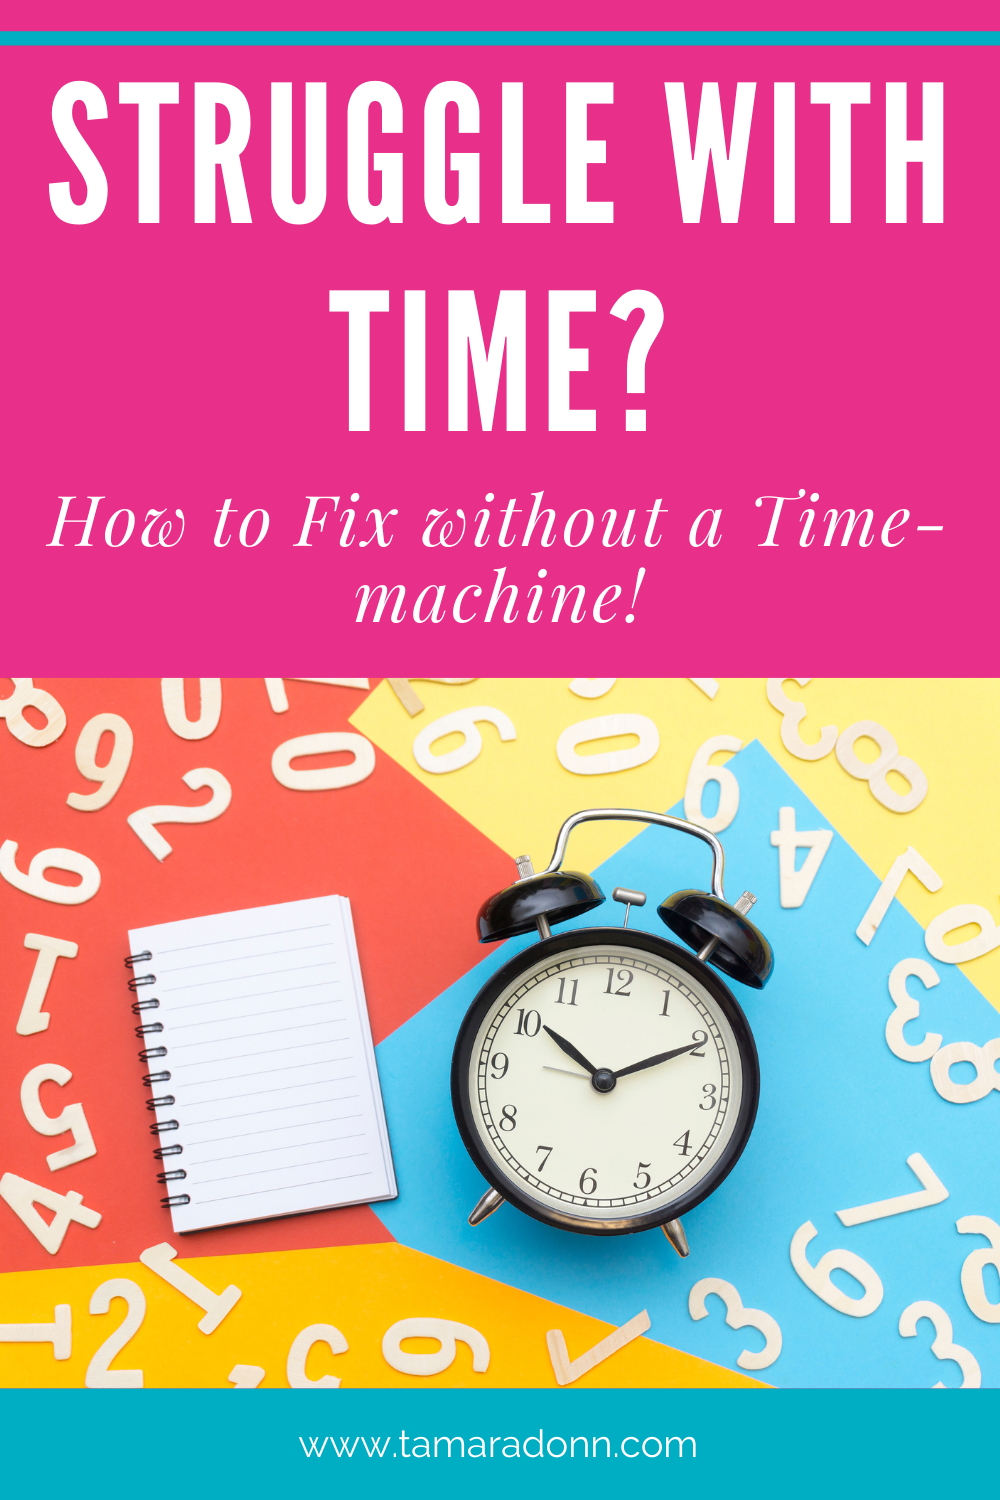 You've Got No Time. Here's How to Fix without a Time-machine!